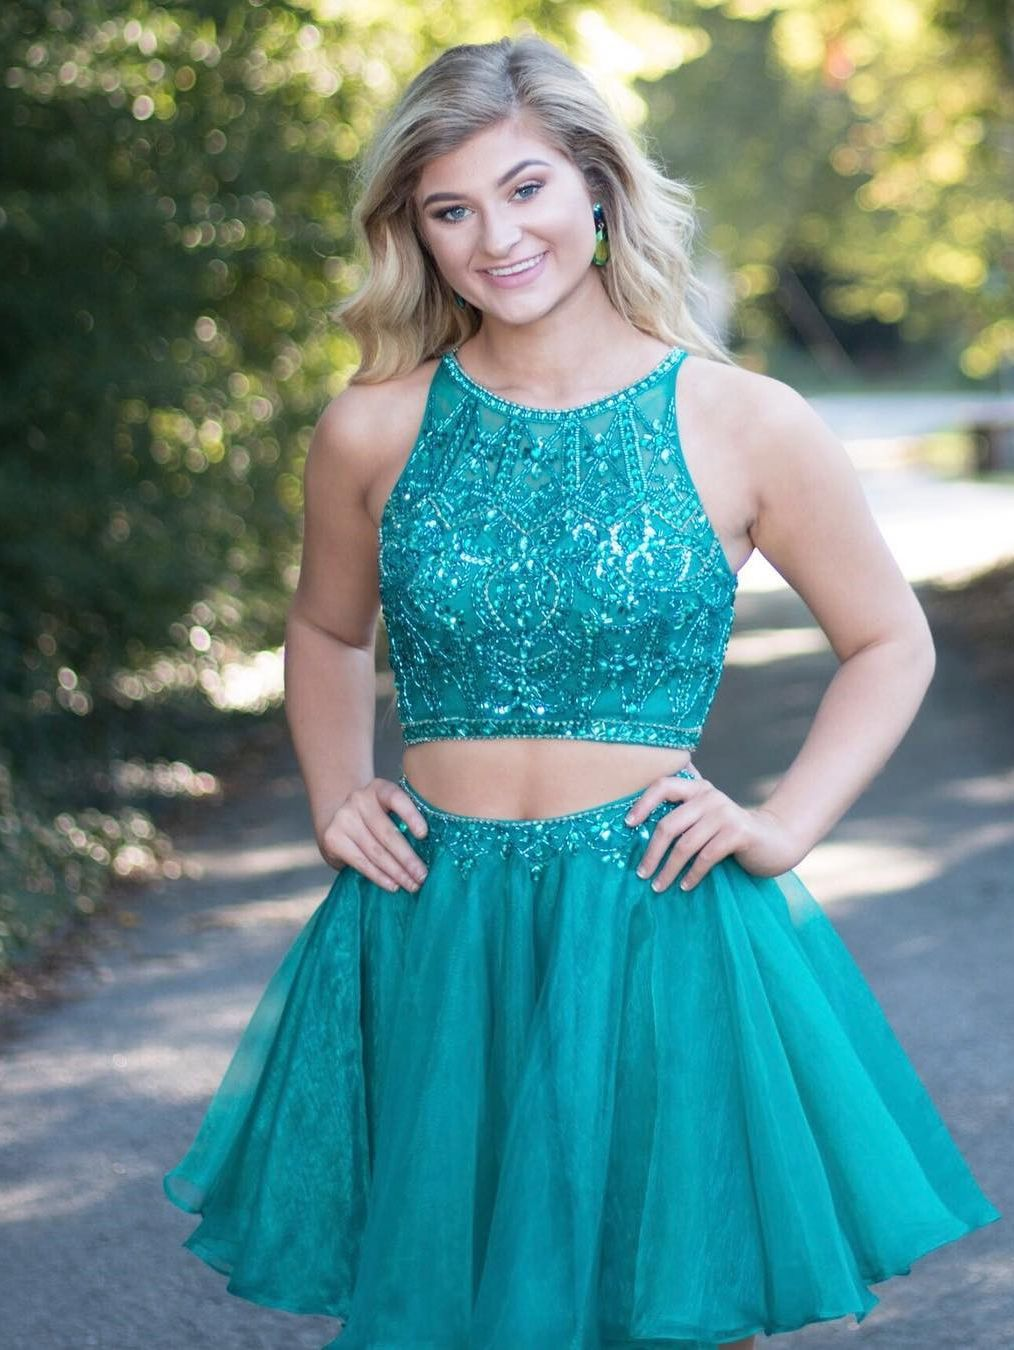 Sparkly Two Piece Teal Short Homecoming Dress With Open Back Prom Dresses Two Piece Cute Prom Dresses Piece Prom Dress [ 1350 x 1014 Pixel ]